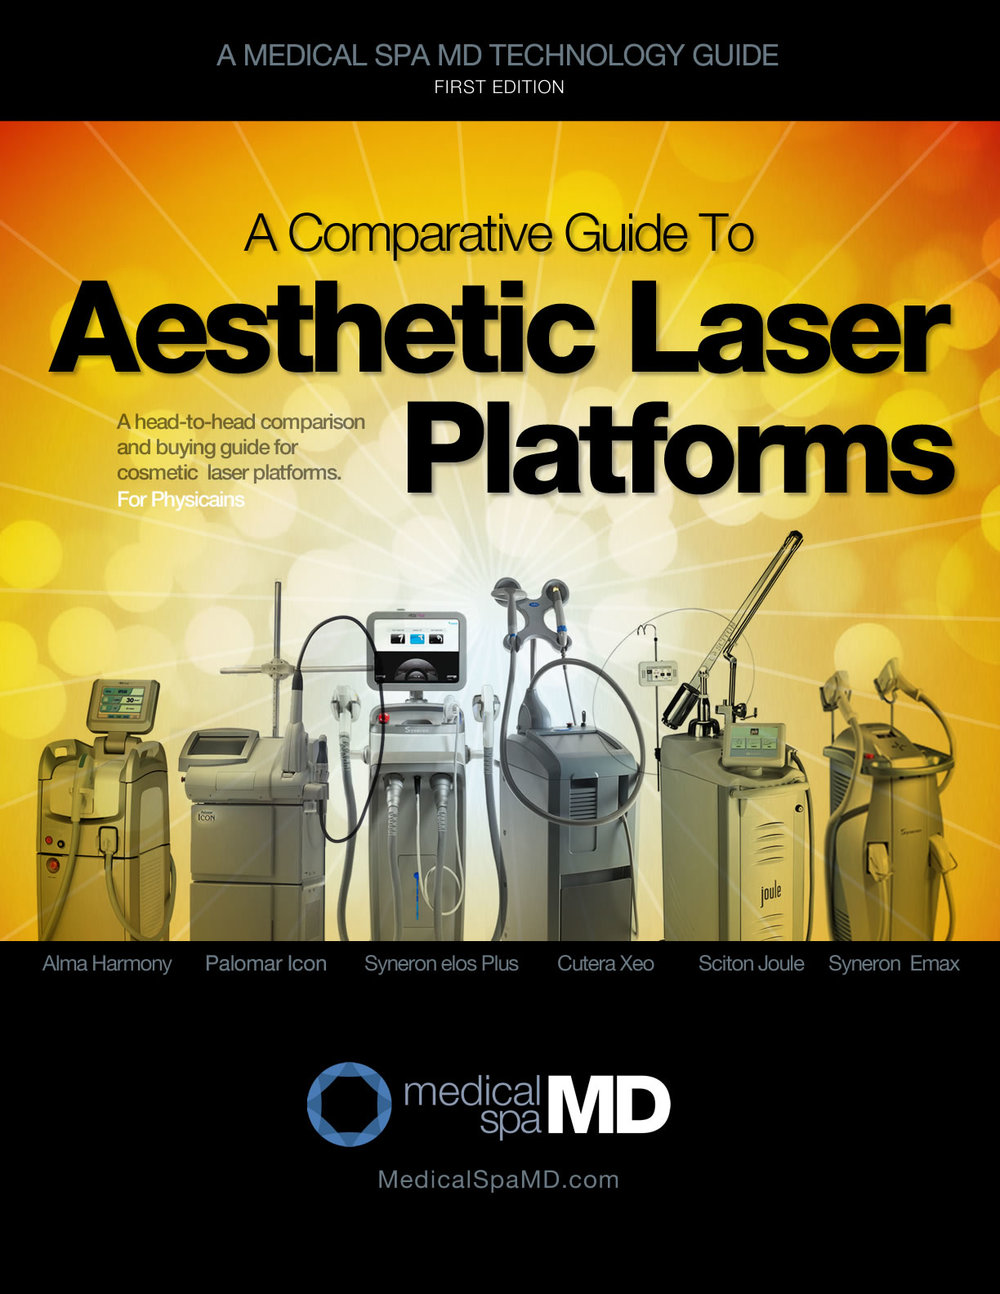 cover-medical-spa-md-guide-cosmetic-laser-platforms.jpg